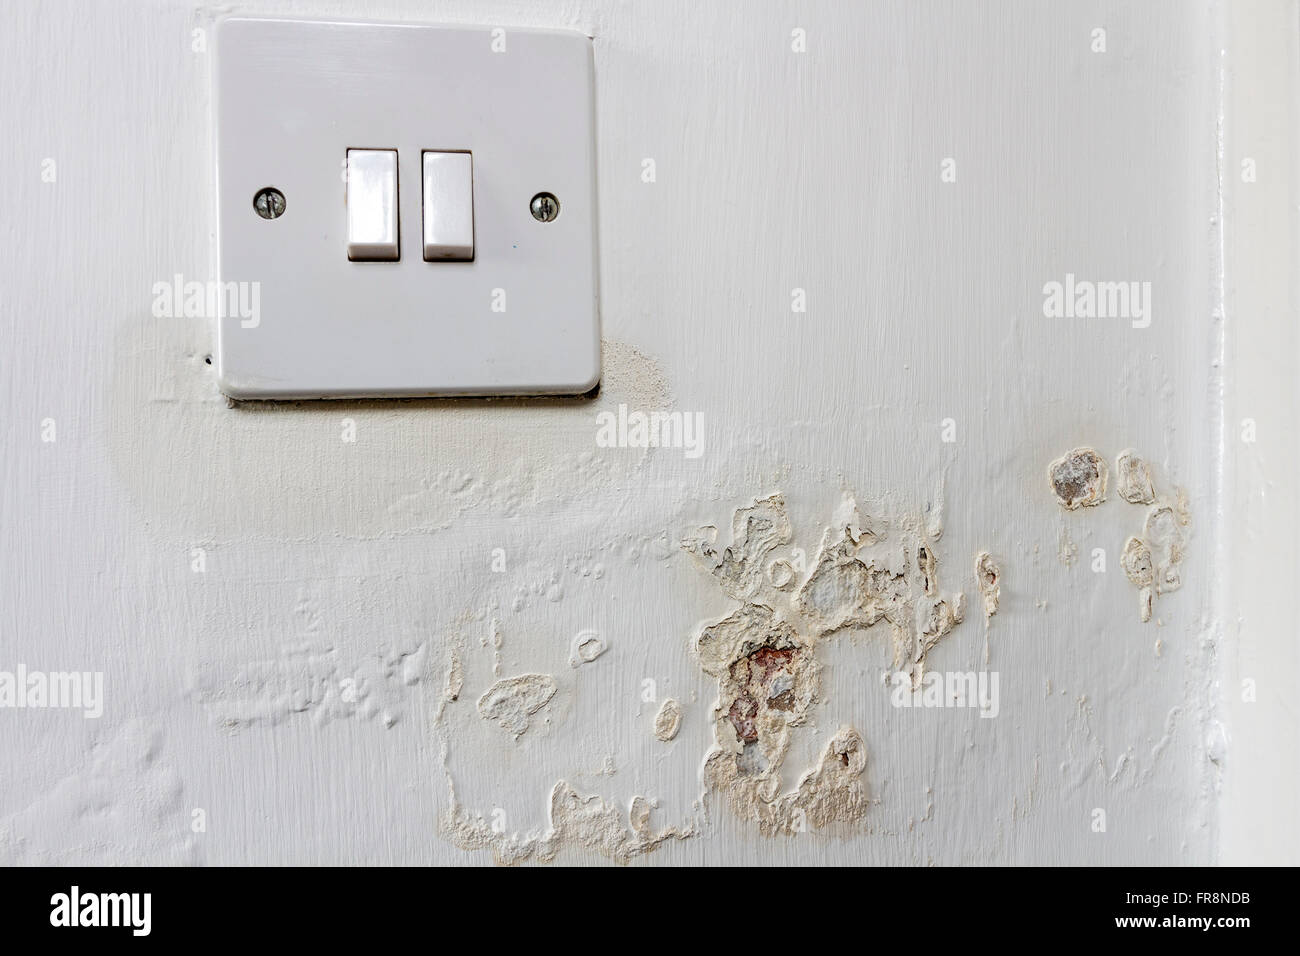 Damp Leaching Out of a Wall and Around a Light Switch in a Rented House Where the Landlord has Failed to Address - Stock Image